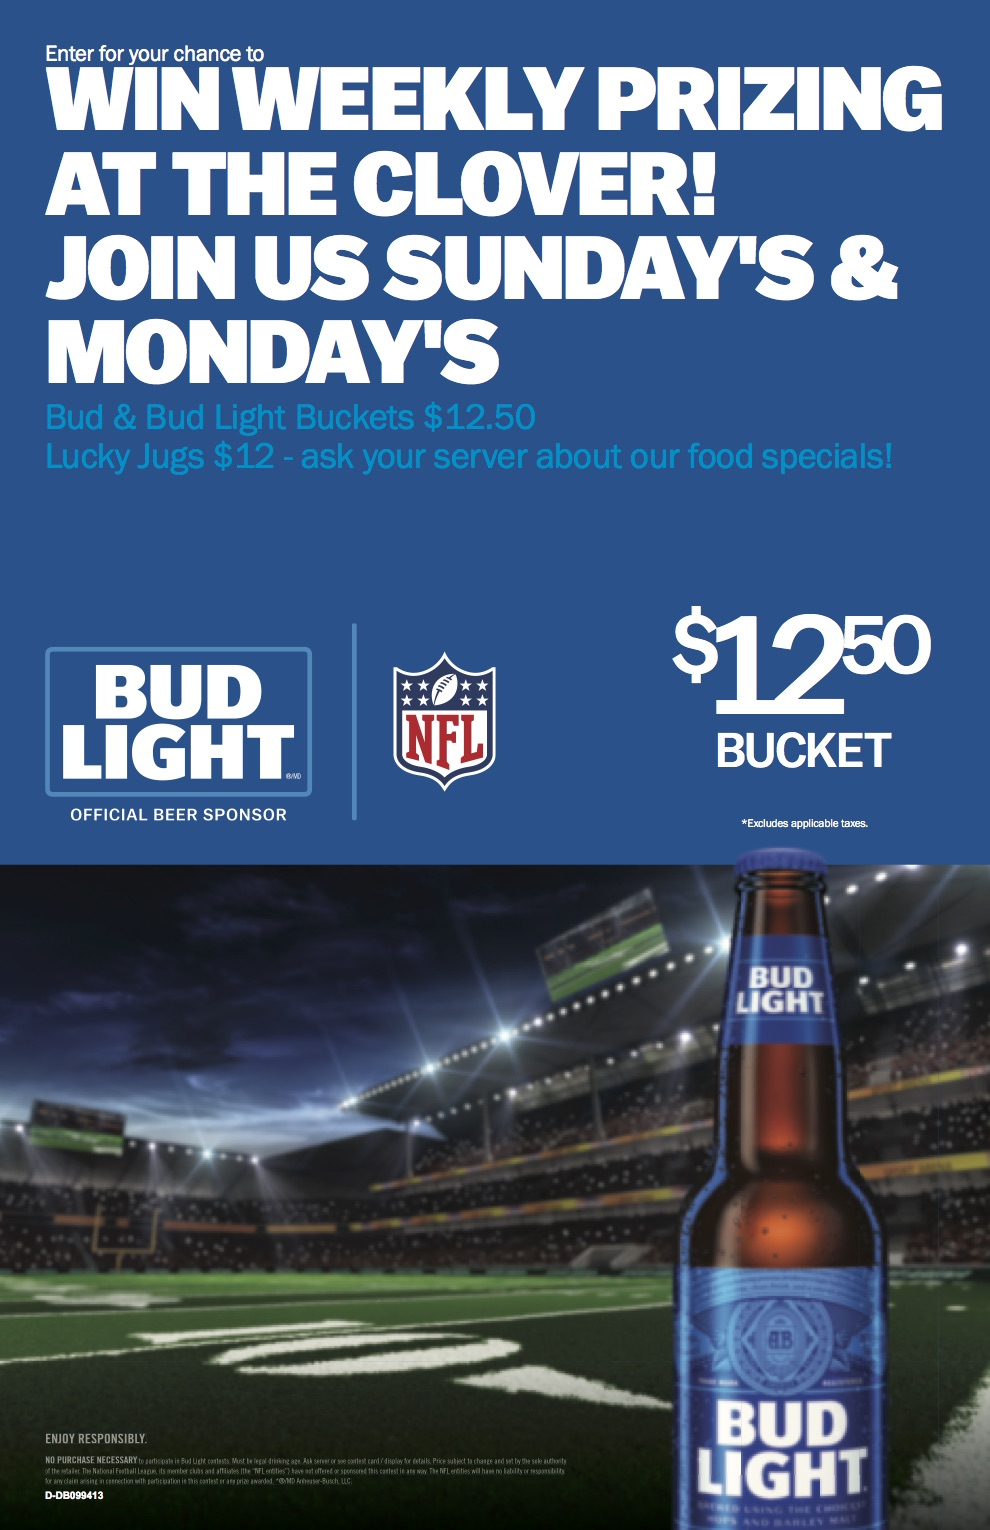 NFL Football, Every Sunday, Monday, Prizes plus awesome drink specials:$12 jugs of Lucky Lager$12.50 buckets of Bud Light$5 Coronas$ Ceasars -